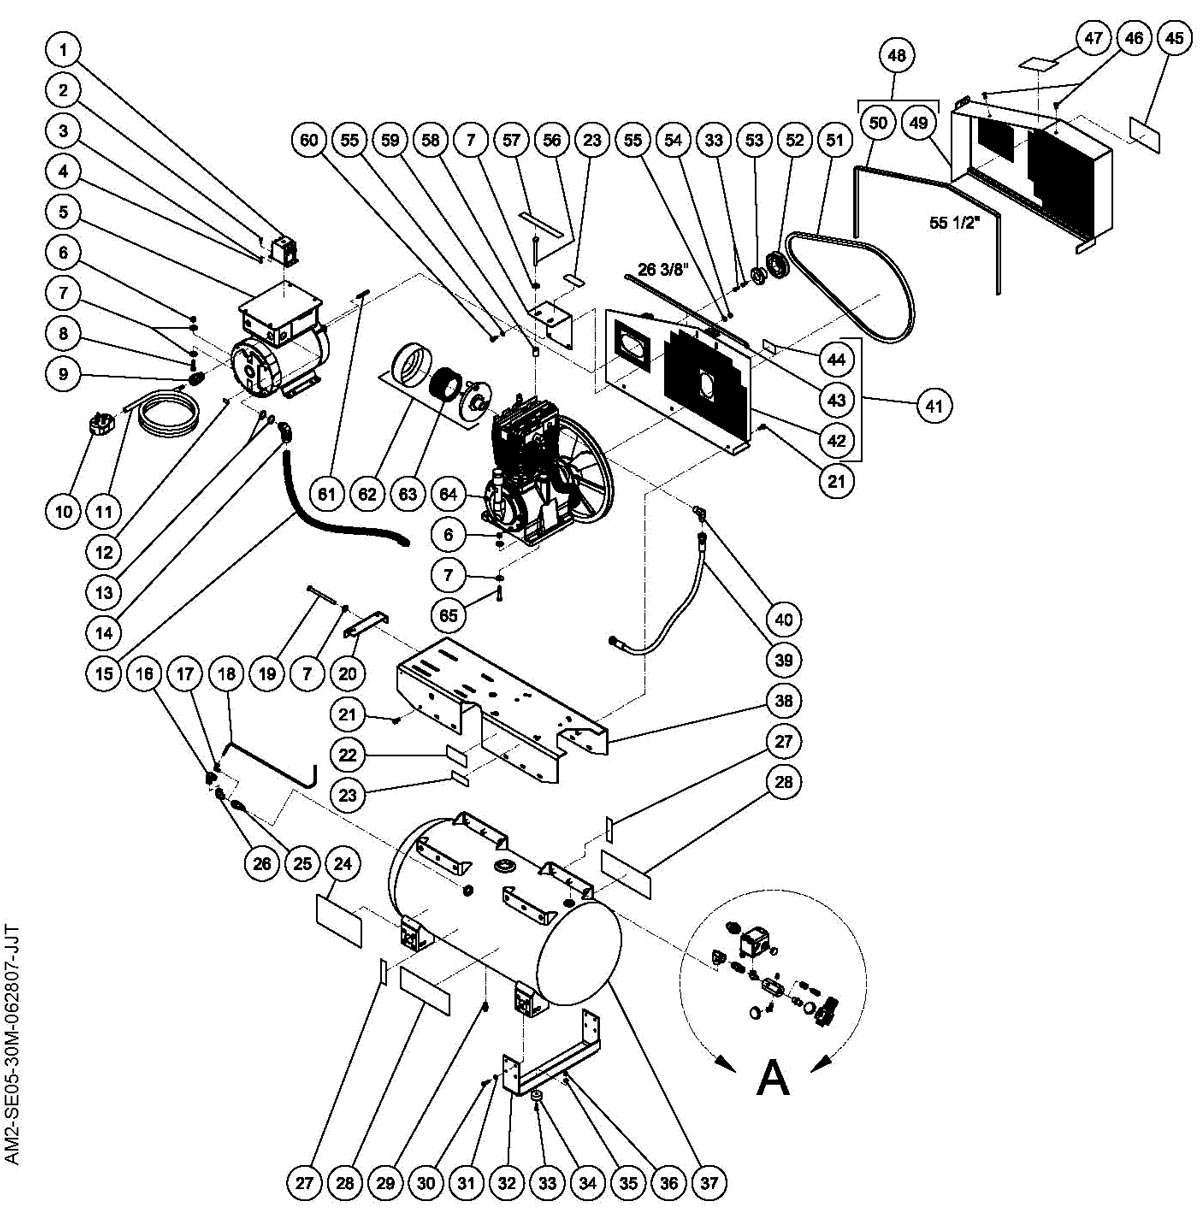 AM2-SE05-30M - Air Compressor Parts schematic